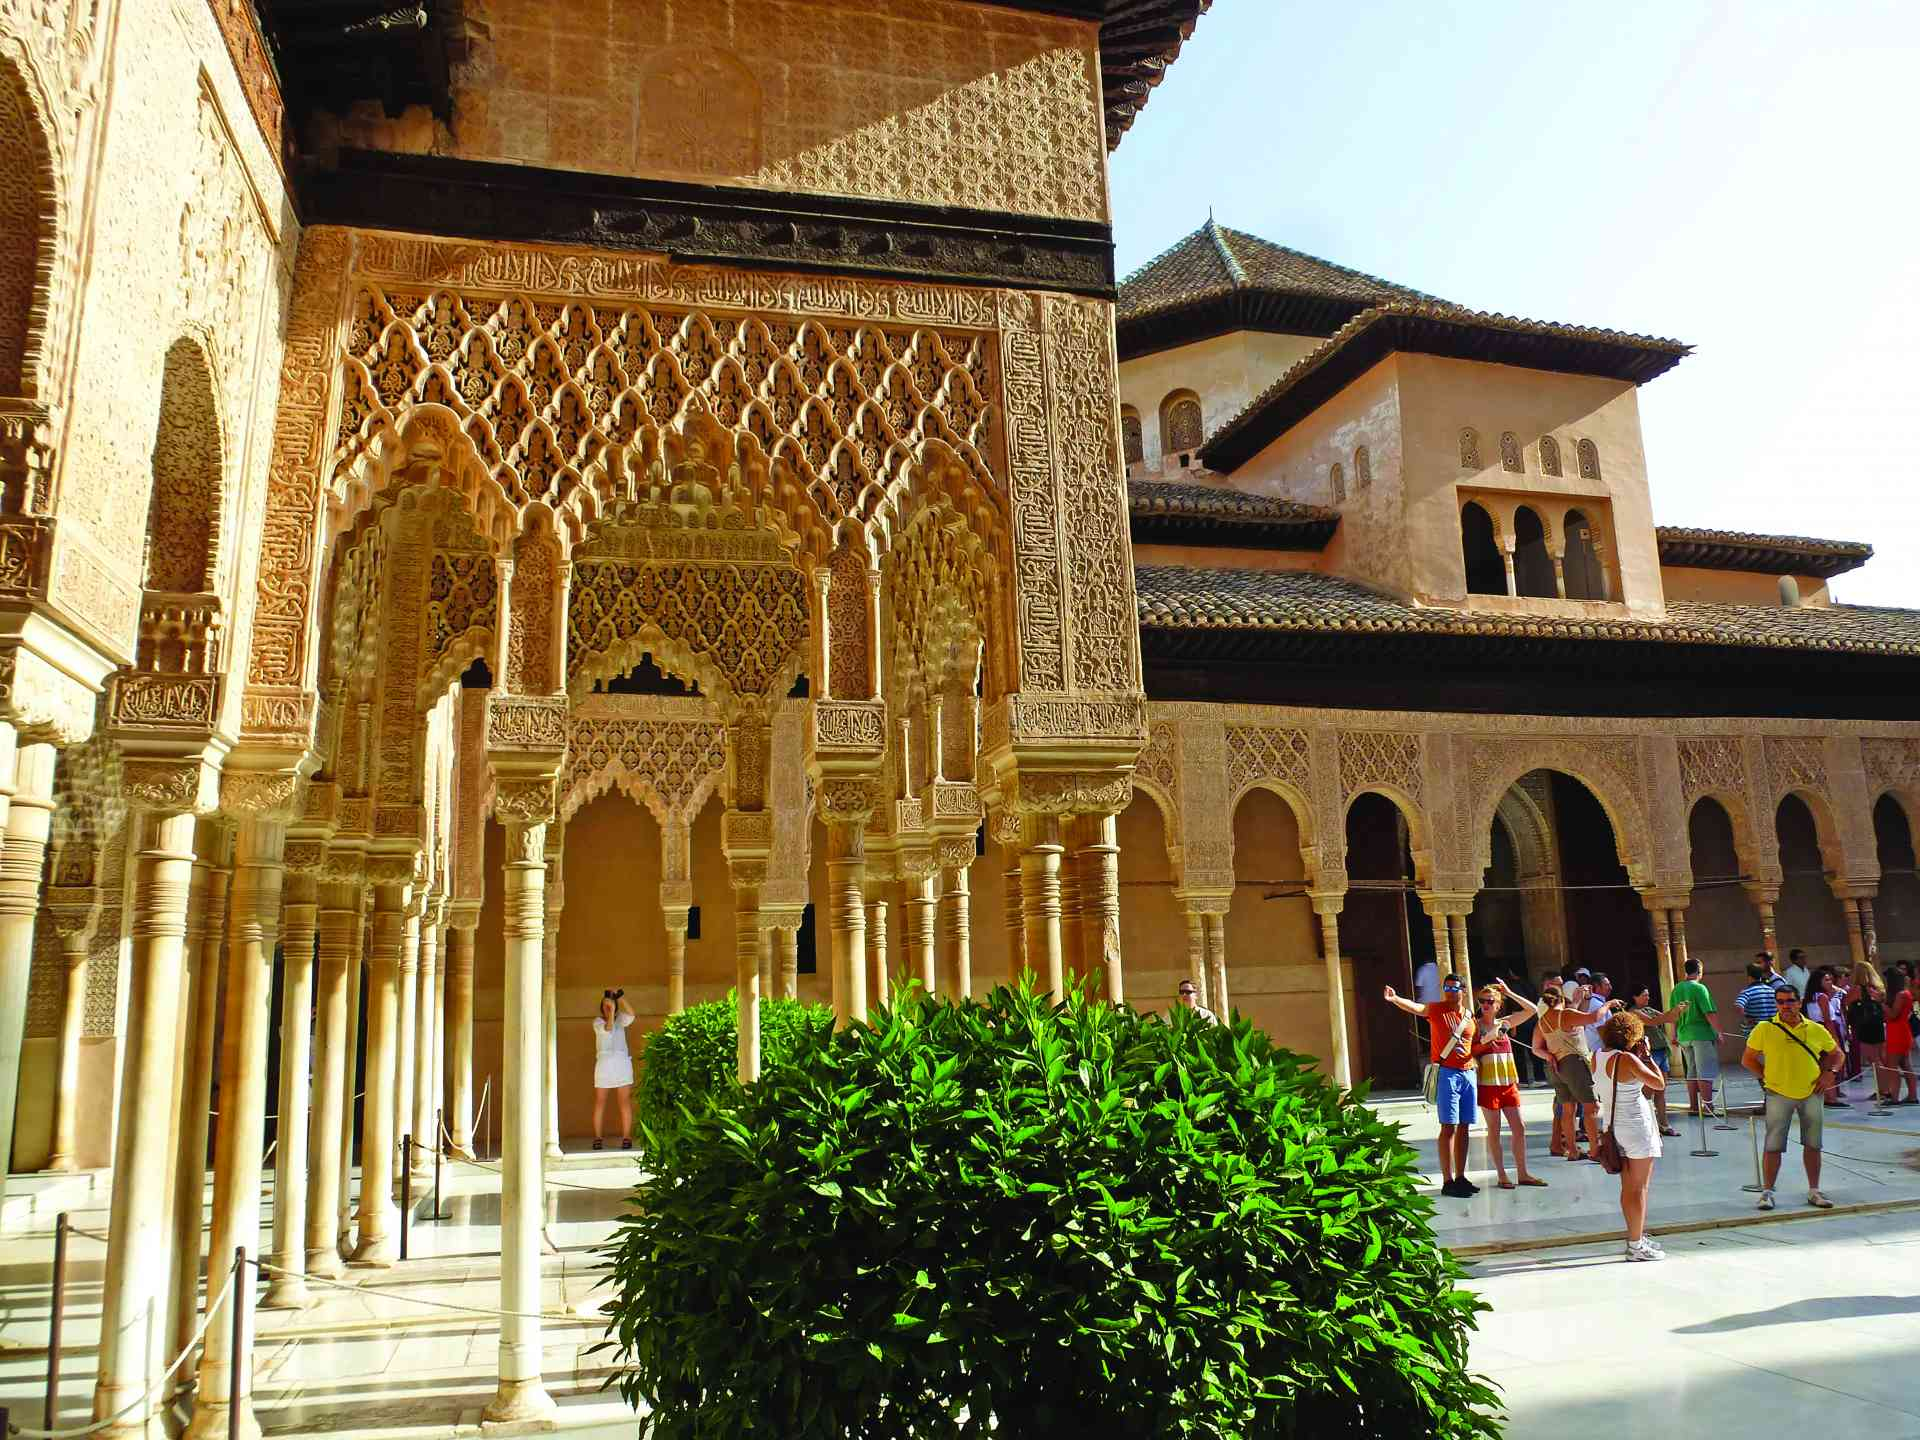 Alhambra Palace in Granada, Spain by Marion Bunnik